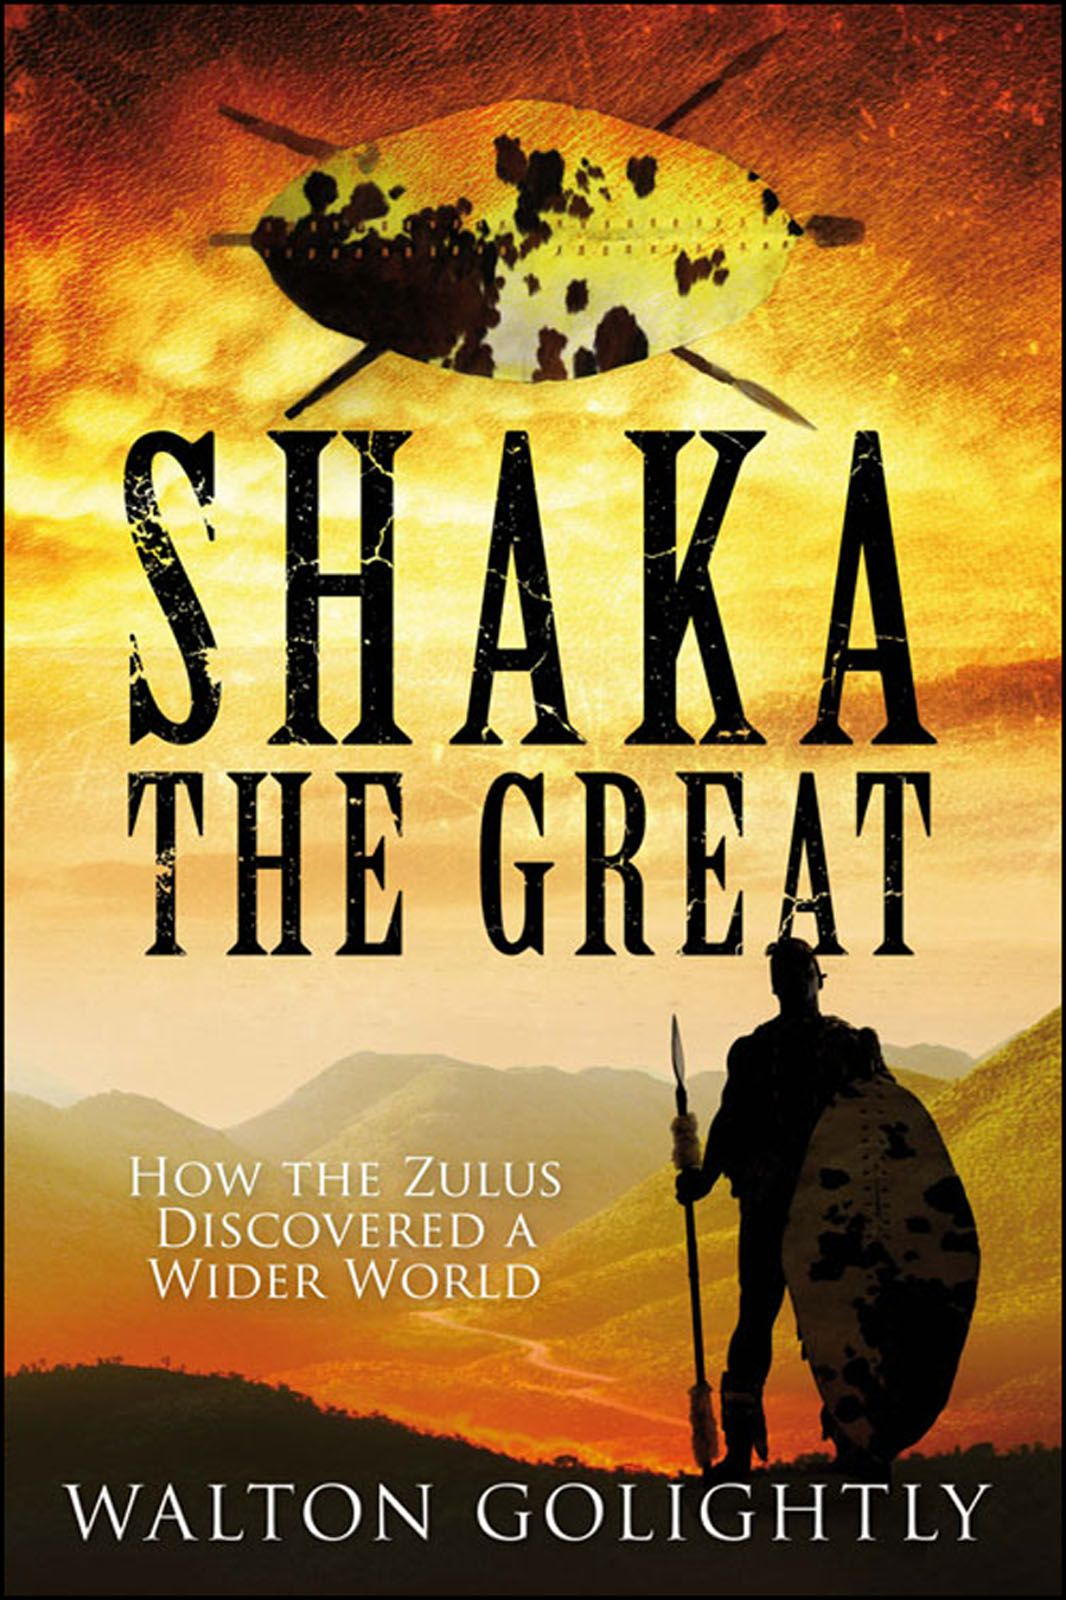 Shaka the Great: The Epic Story of the Zulu Empire By: Walton Golightly